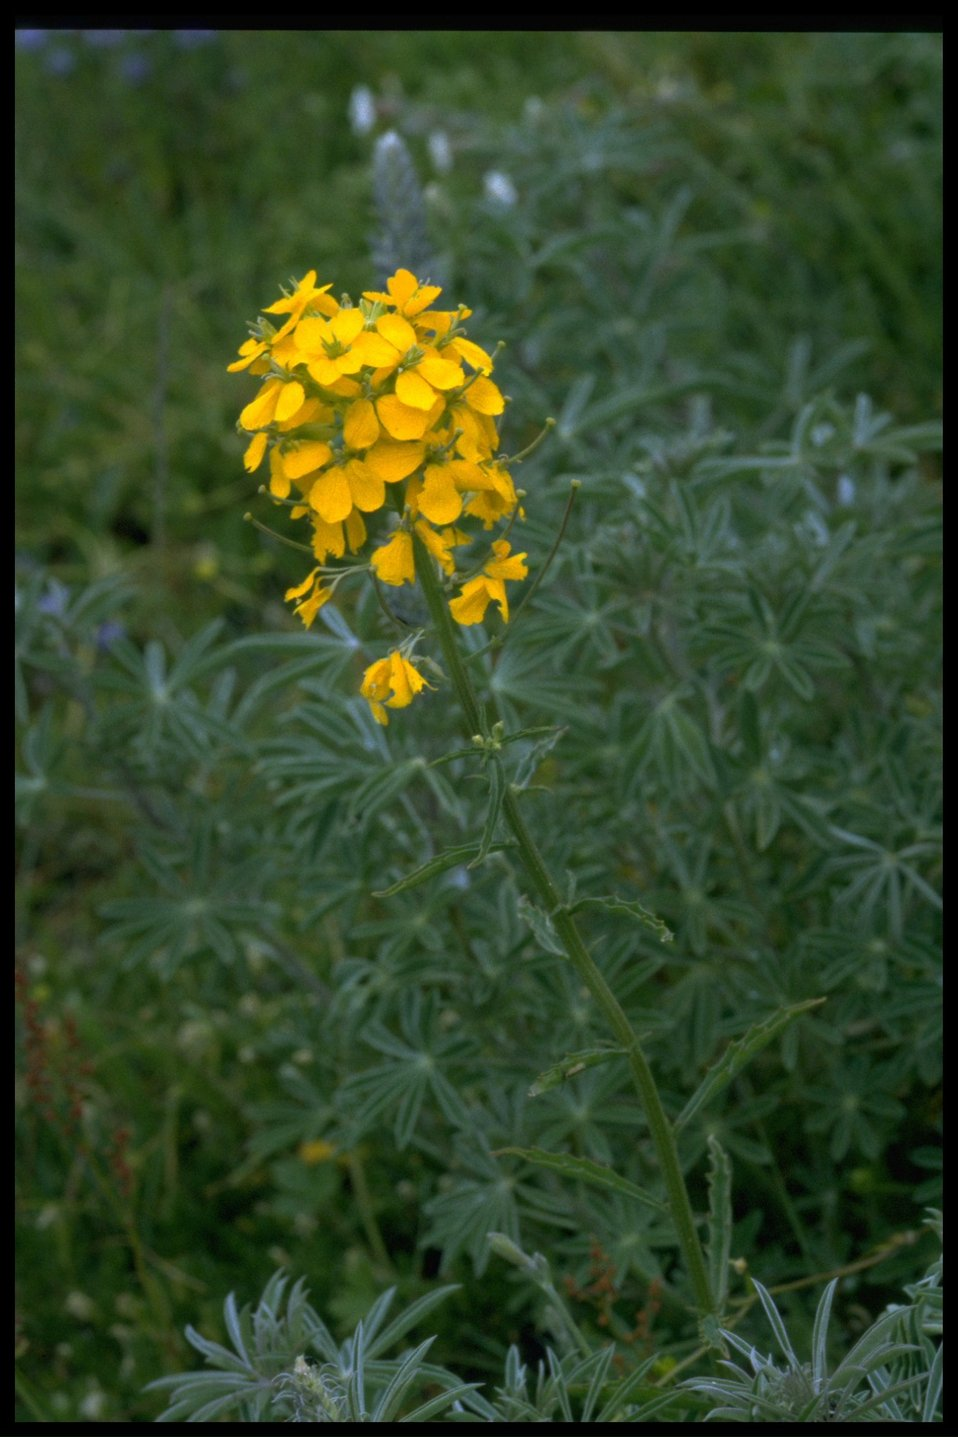 Medium shot of Erysimum cheiranthoides.